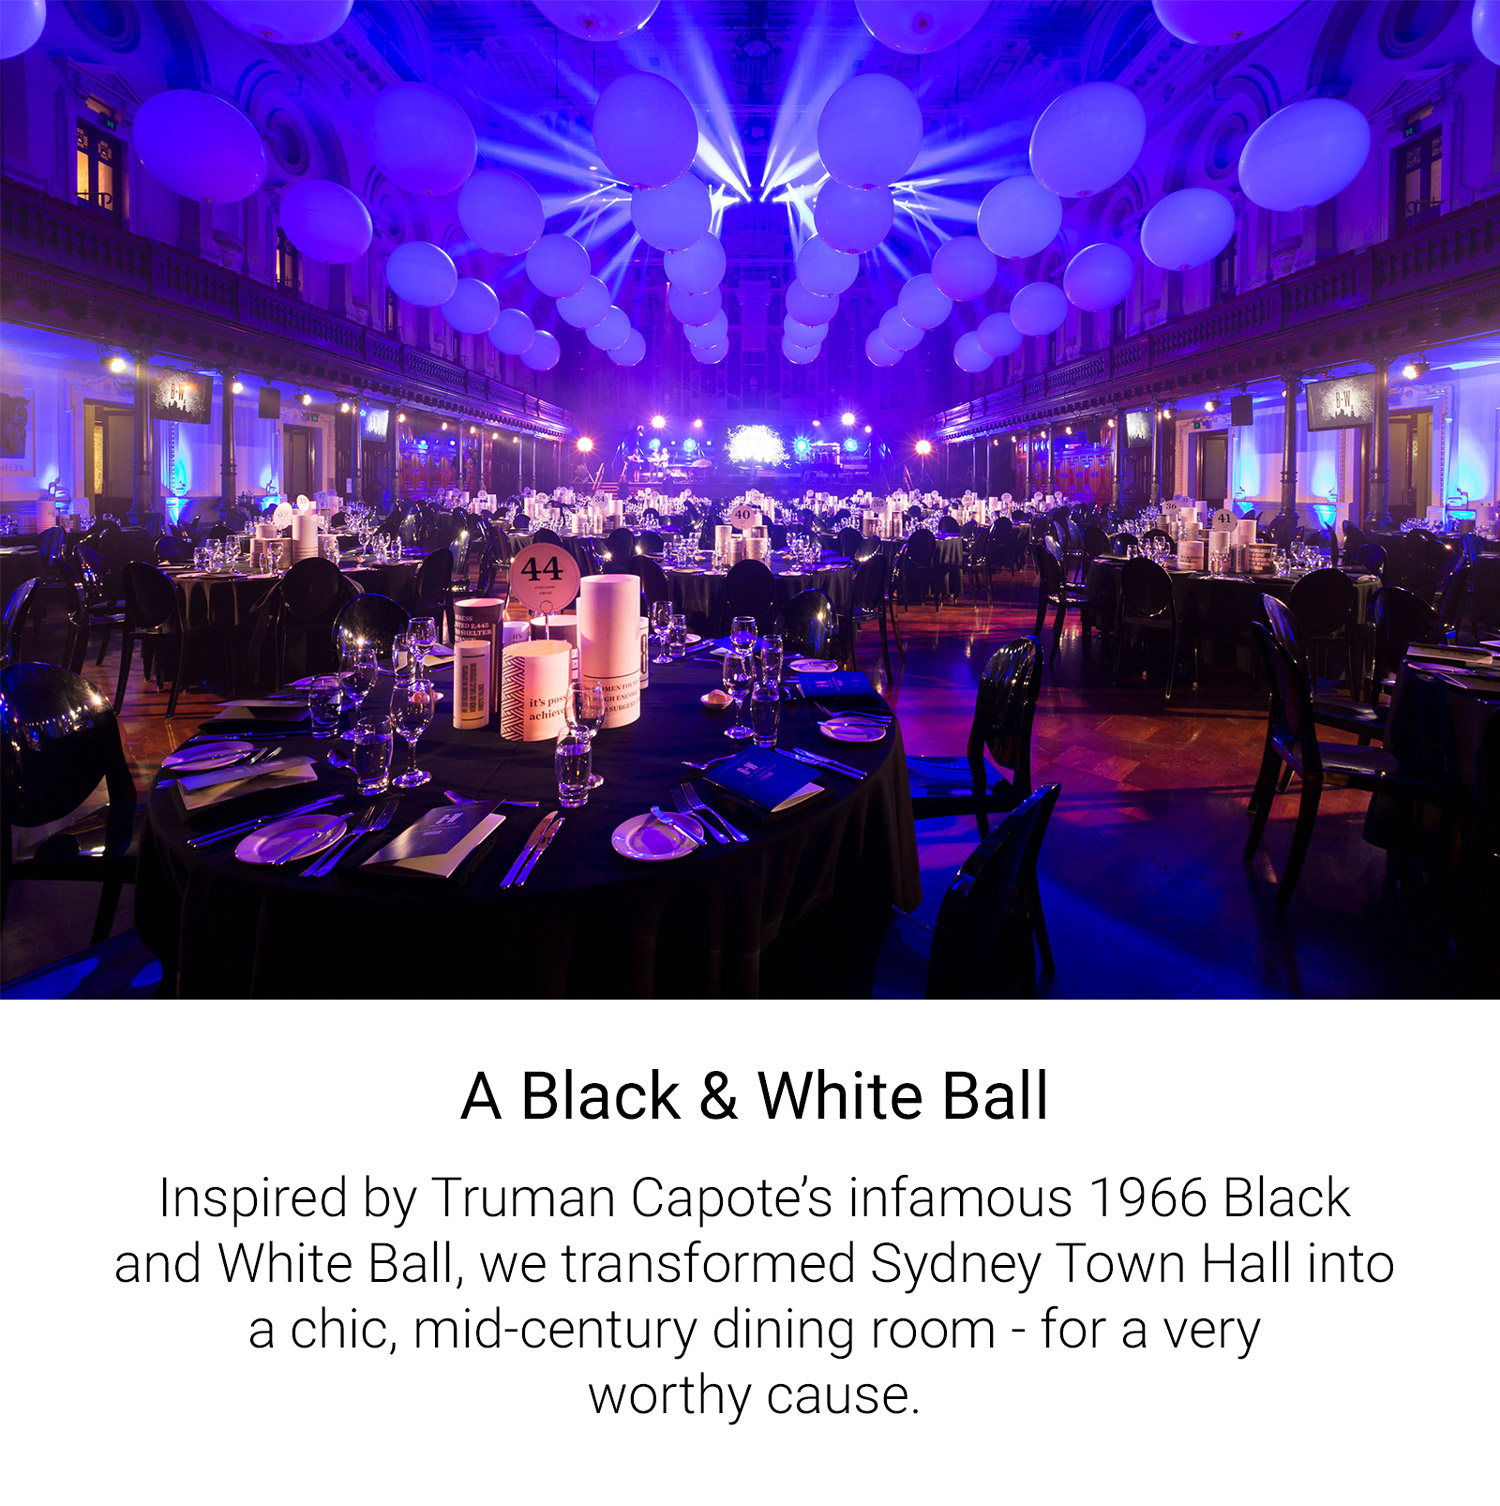 A Black & White Ball